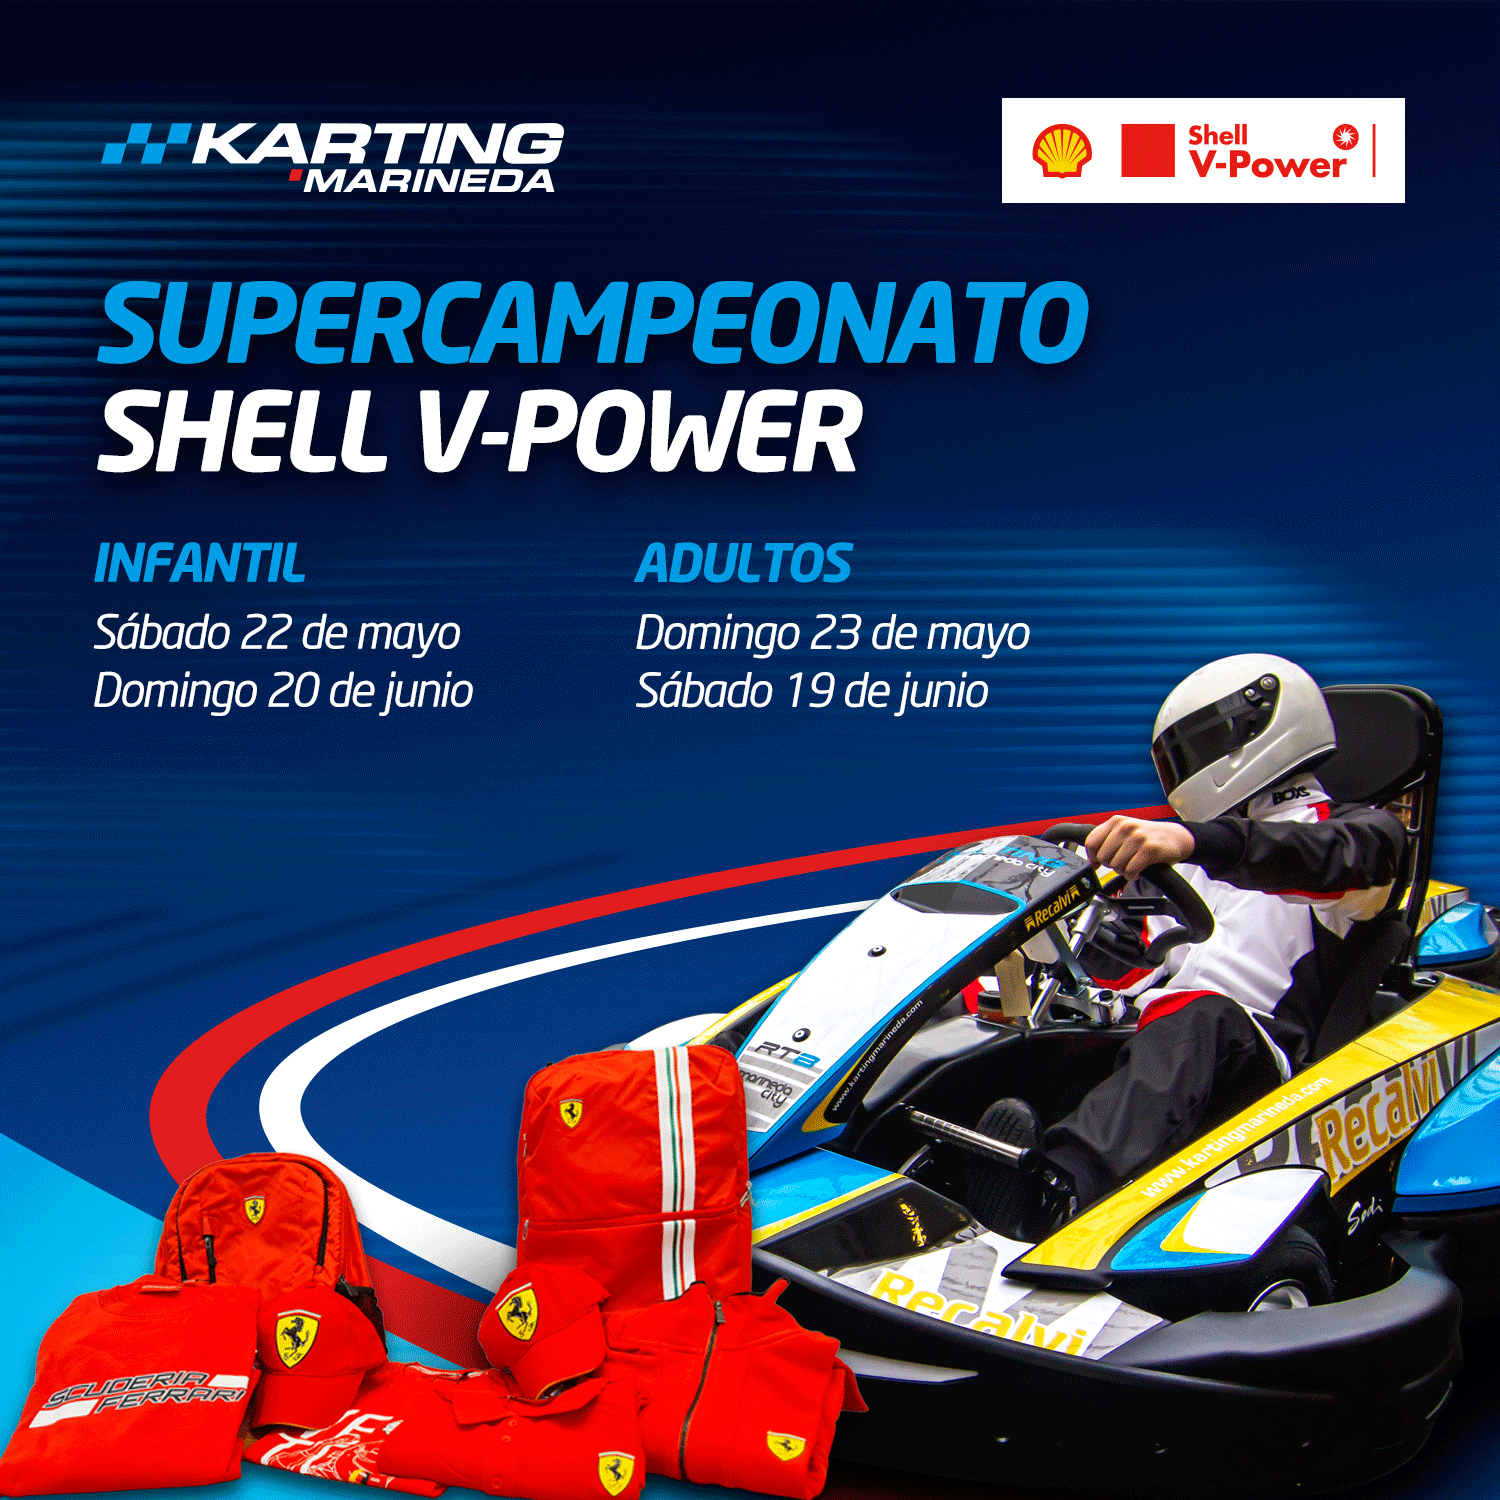 Supercampeonato Shell V-Power / 1 Prueba